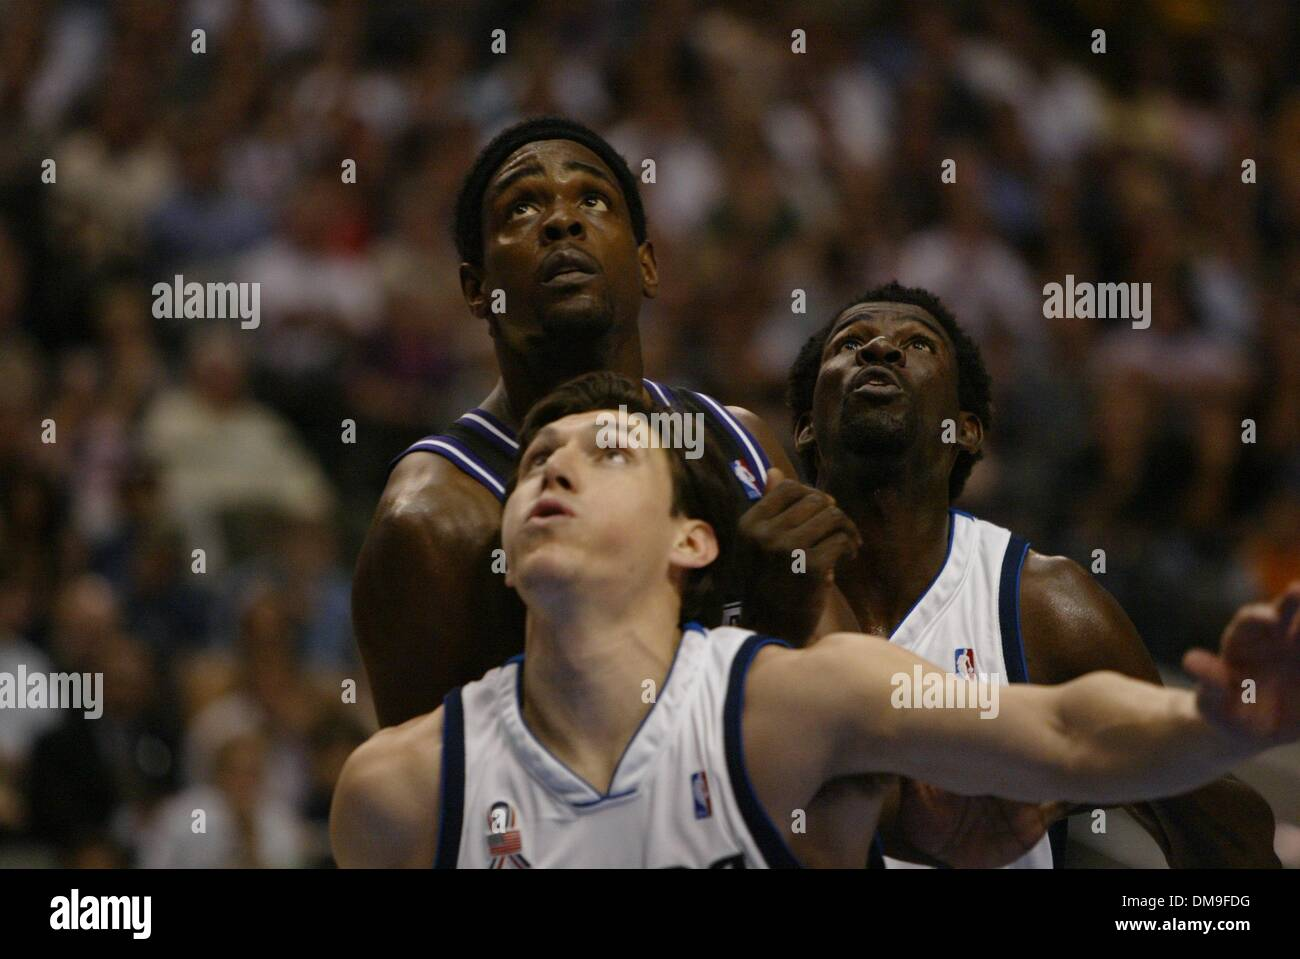 36989aabd Kings Forward Chris Webber is sandwiched by Eduardo Najera and Mich Finley  trying for a rebound